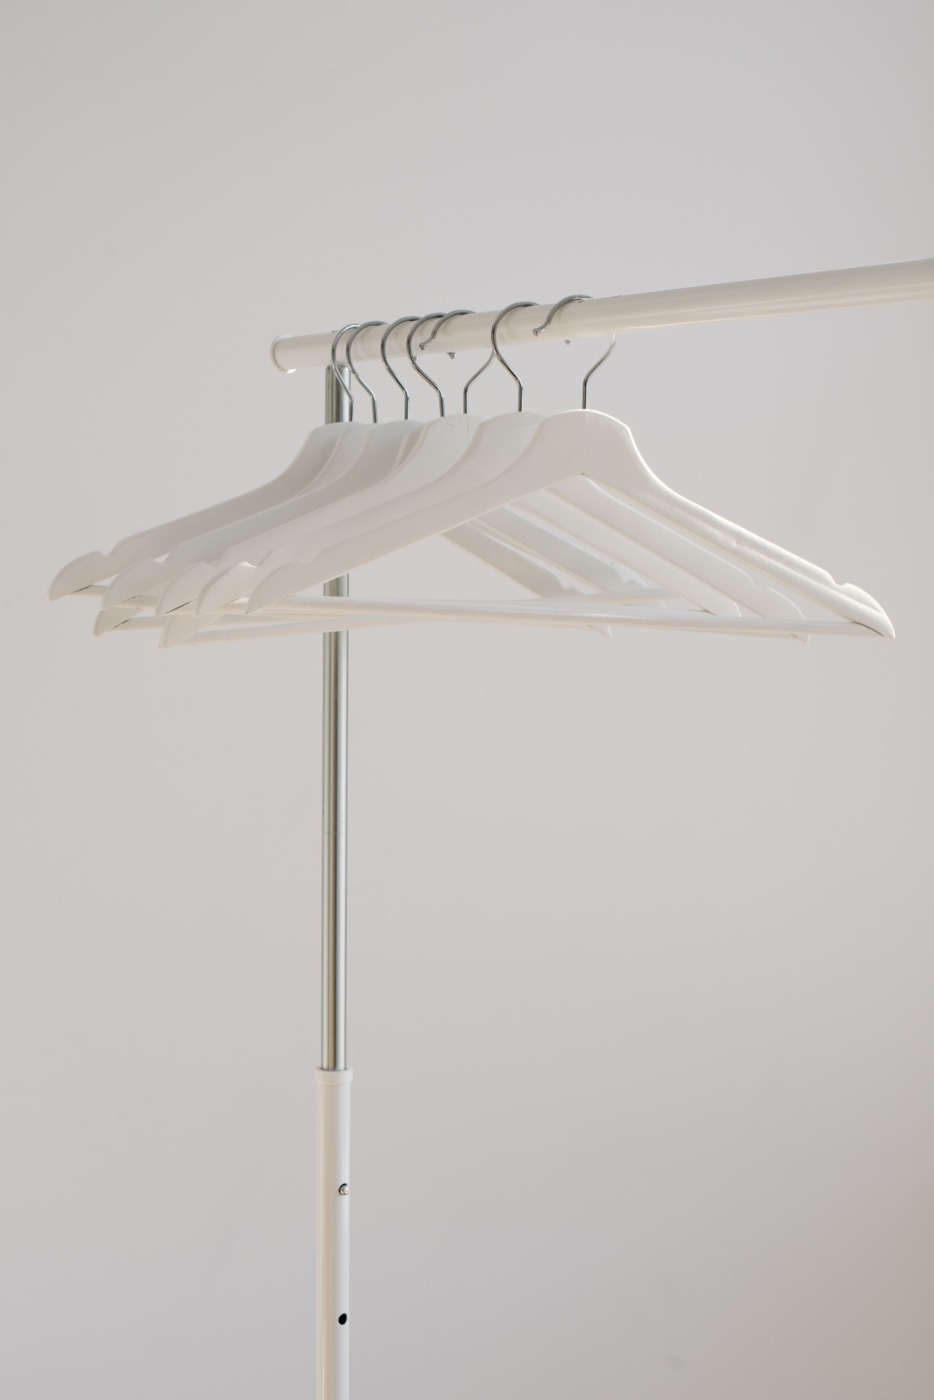 Clothes hangers on a rack / Image: Unsplash